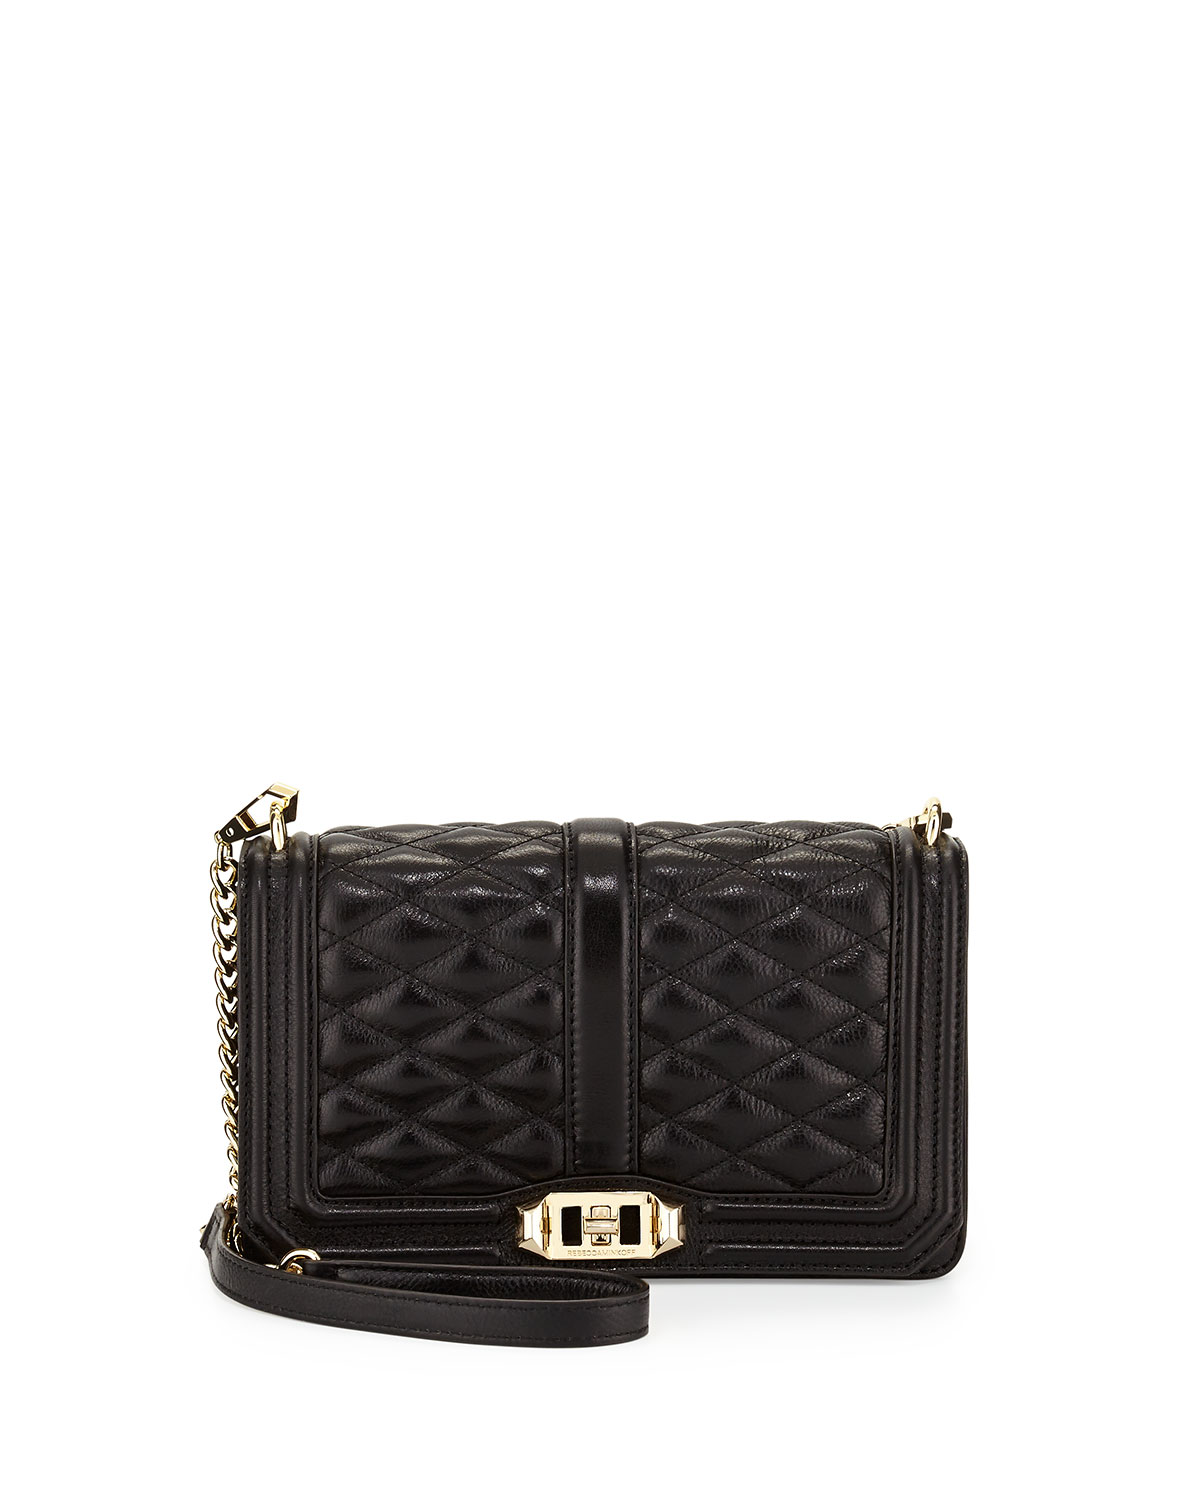 Love Quilted Crossbody Bag, Black - Rebecca Minkoff